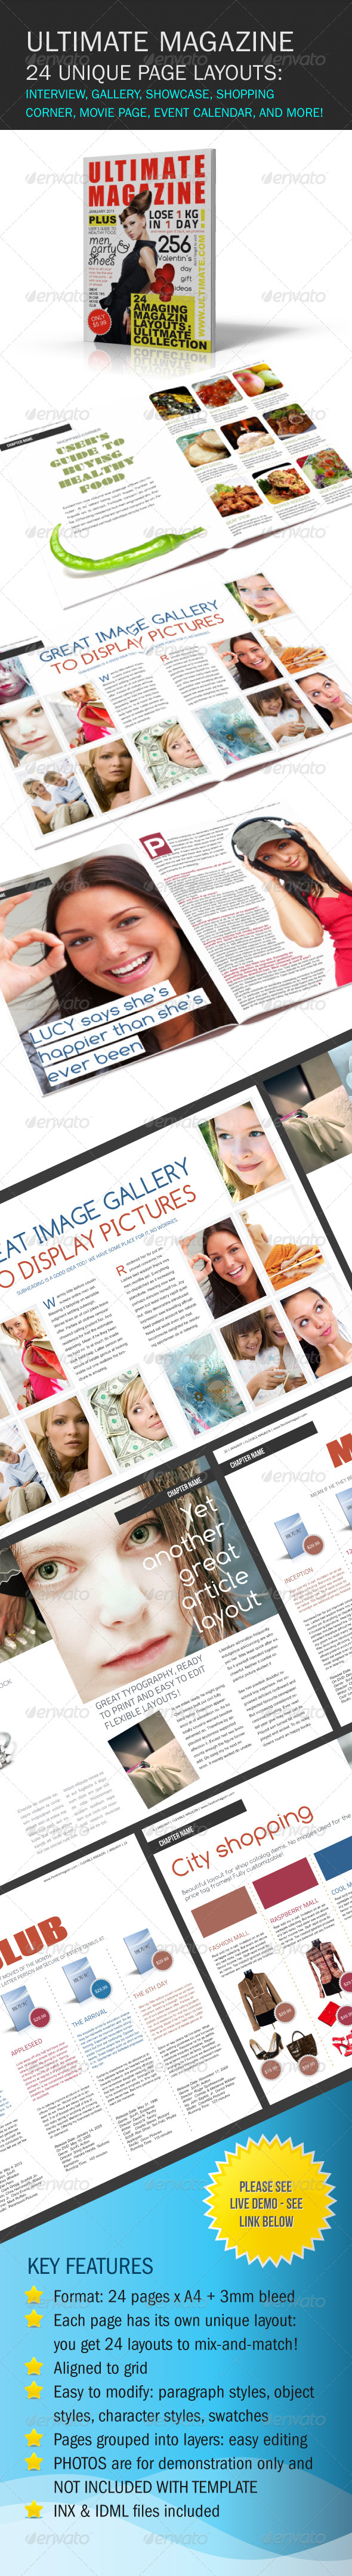 http://0.s3.envato.com/files/1513990/preview-ultimate-magazine.jpg